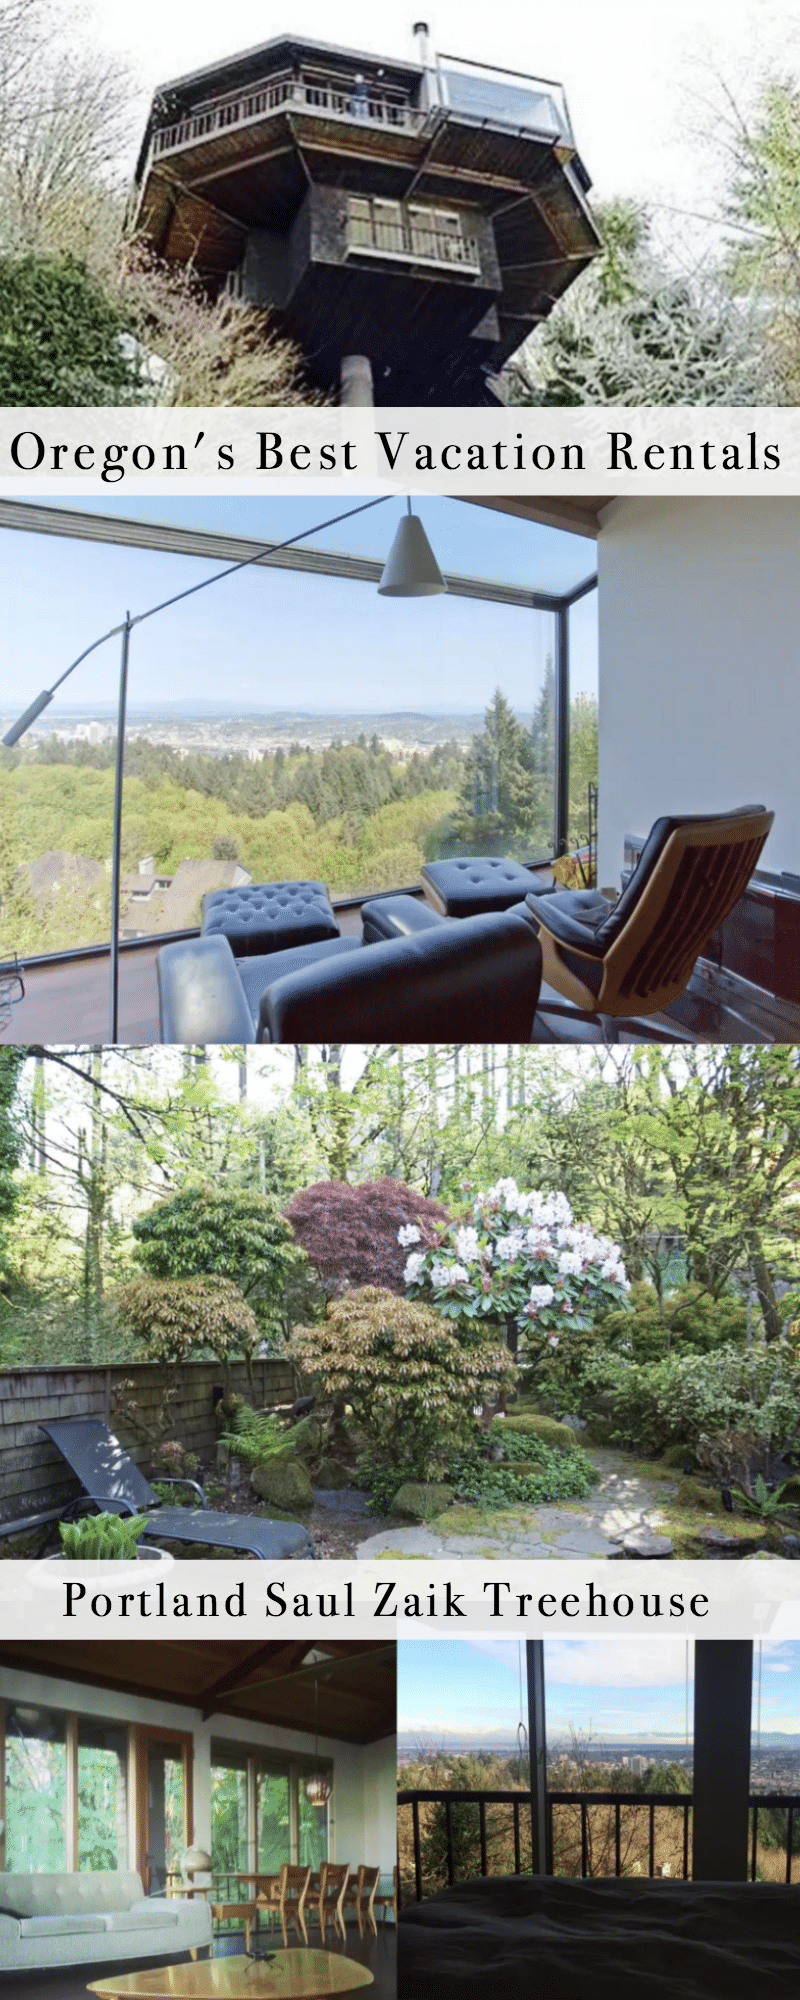 Oregon's Best Vacation Rentals: Portland Treehouse